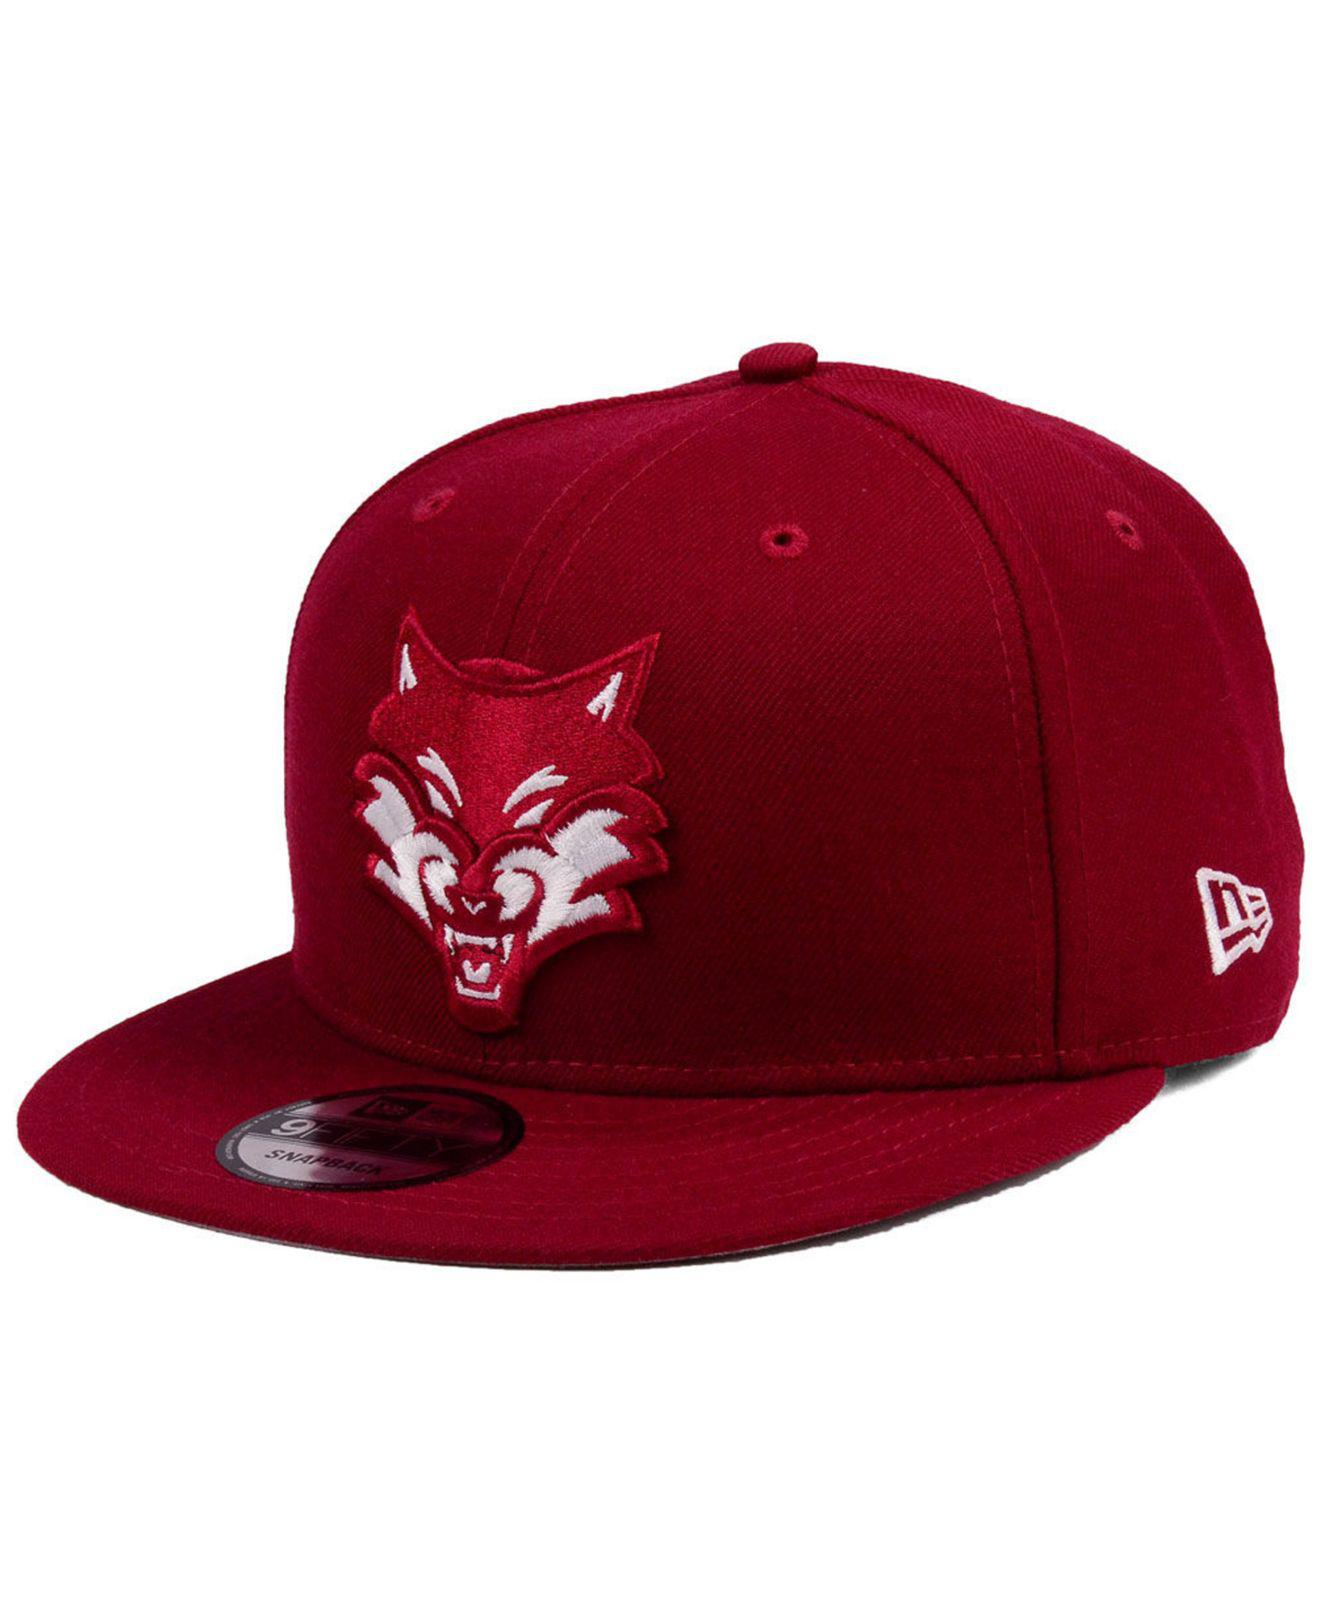 size 40 629ed 39670 KTZ Minnesota Timberwolves Fall Dubs 9fifty Snapback Cap in Red for ...